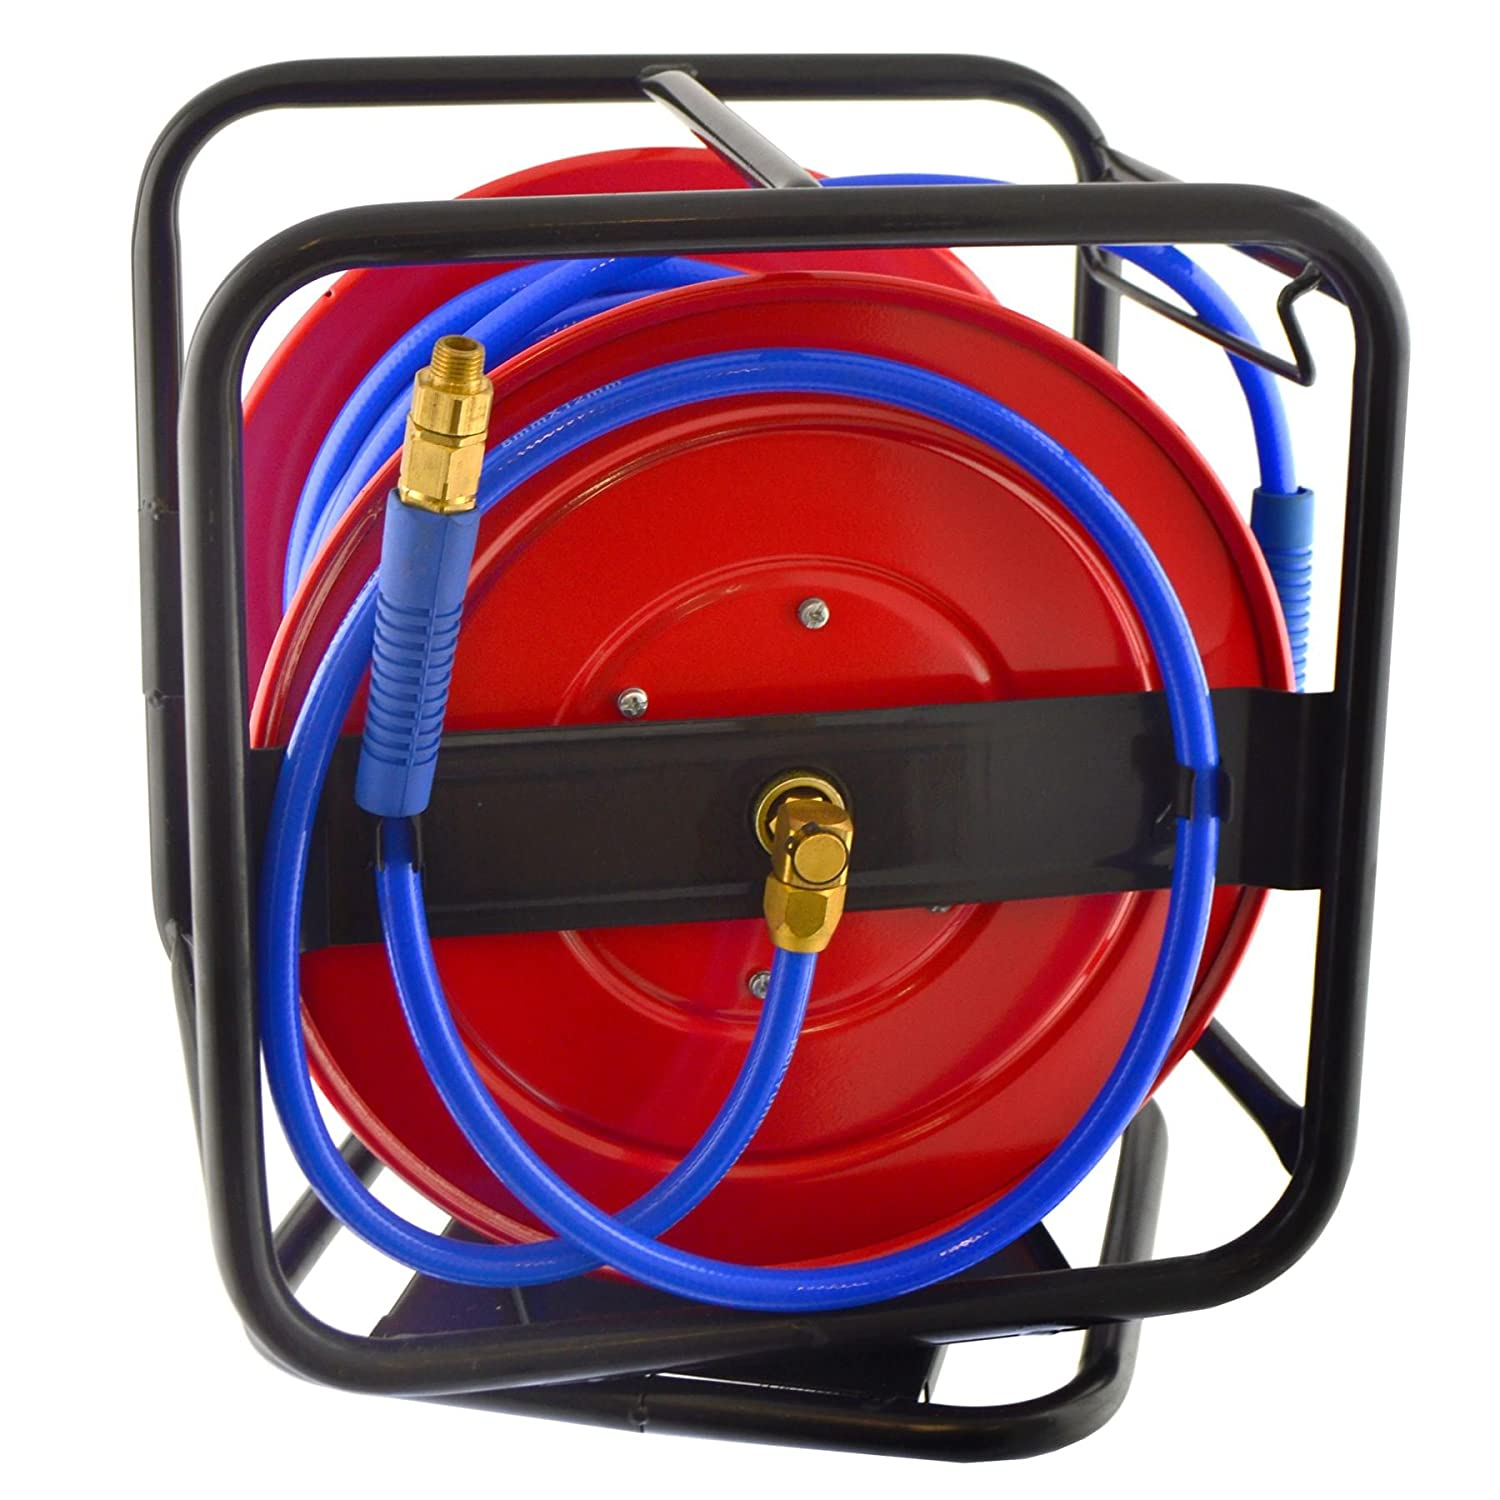 Retractable Air Hose Reel Compressor Air Line 8mm Bore 30 metres 100 feet long. AB Tools